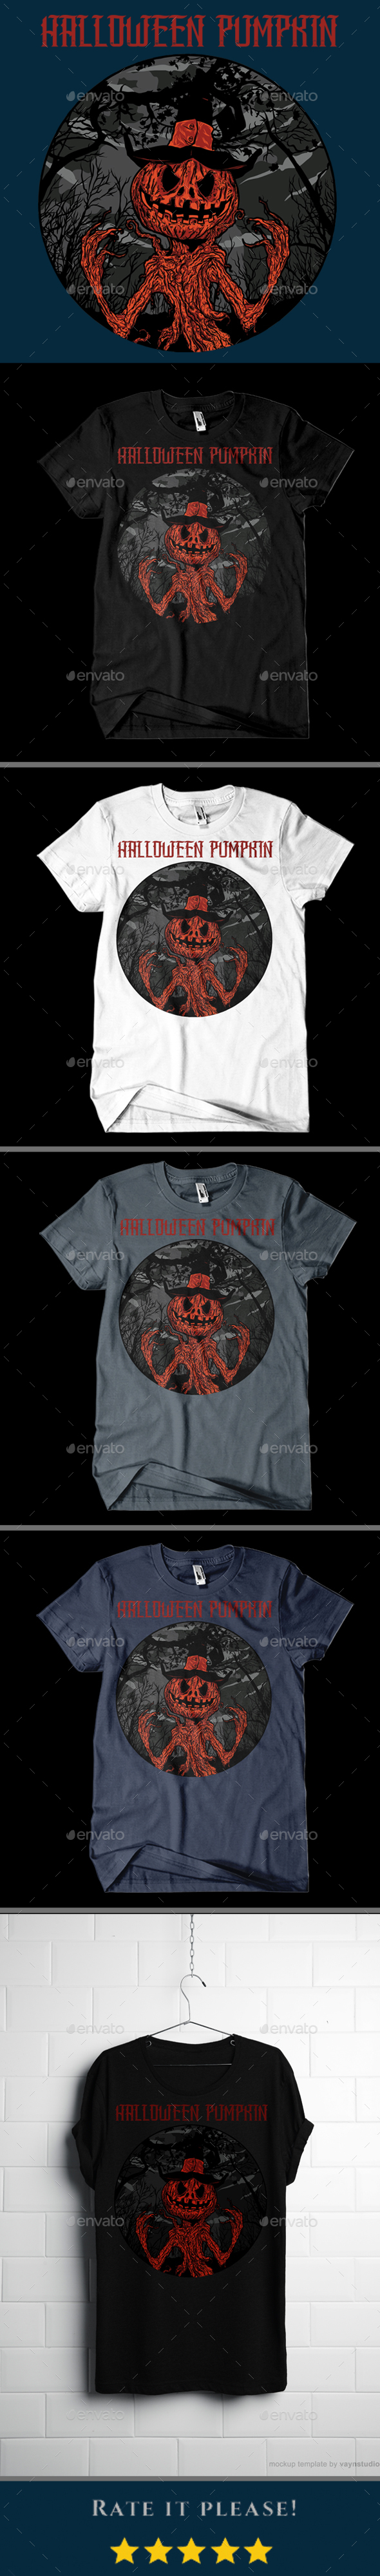 Halloween Pumpkin T-shirt Design - T-Shirts